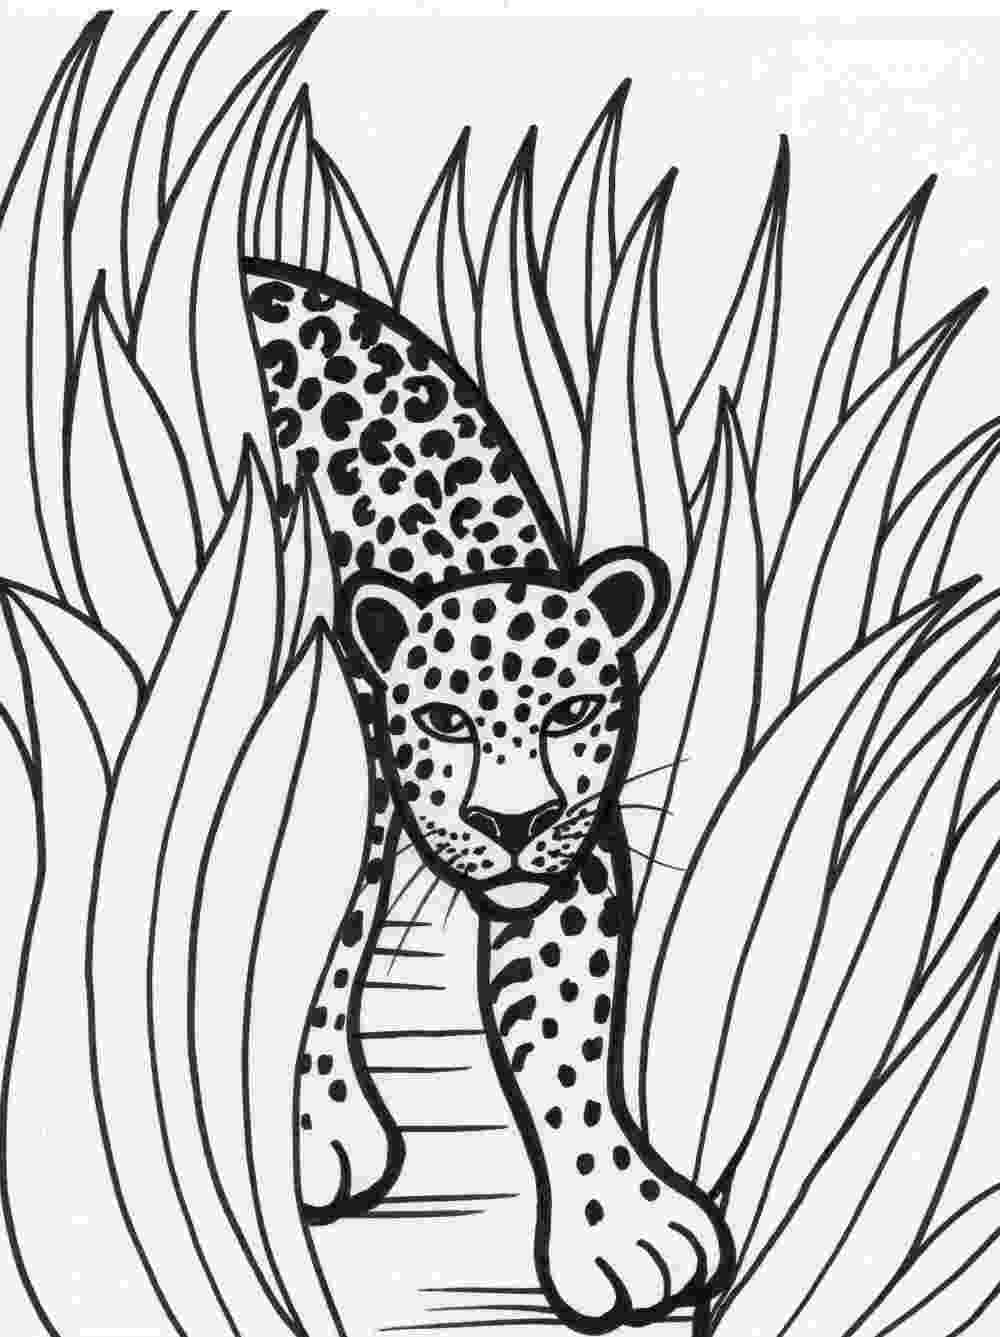 pictures of rainforest animals to color free printable rainforest coloring pages coloring home rainforest of pictures color animals to